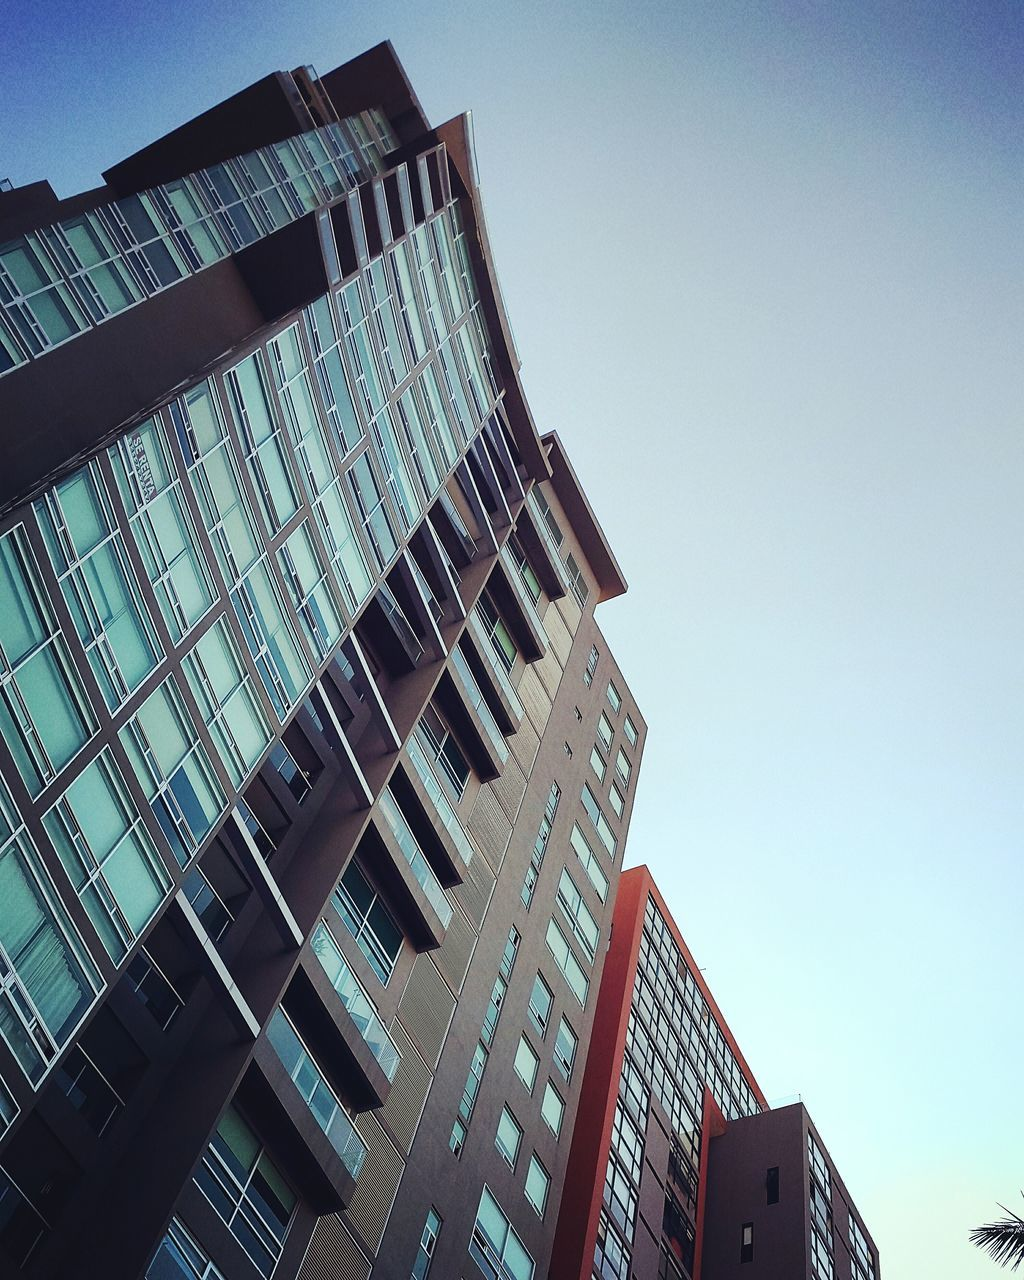 architecture, modern, building exterior, skyscraper, built structure, low angle view, city, clear sky, tall, no people, outdoors, day, sky